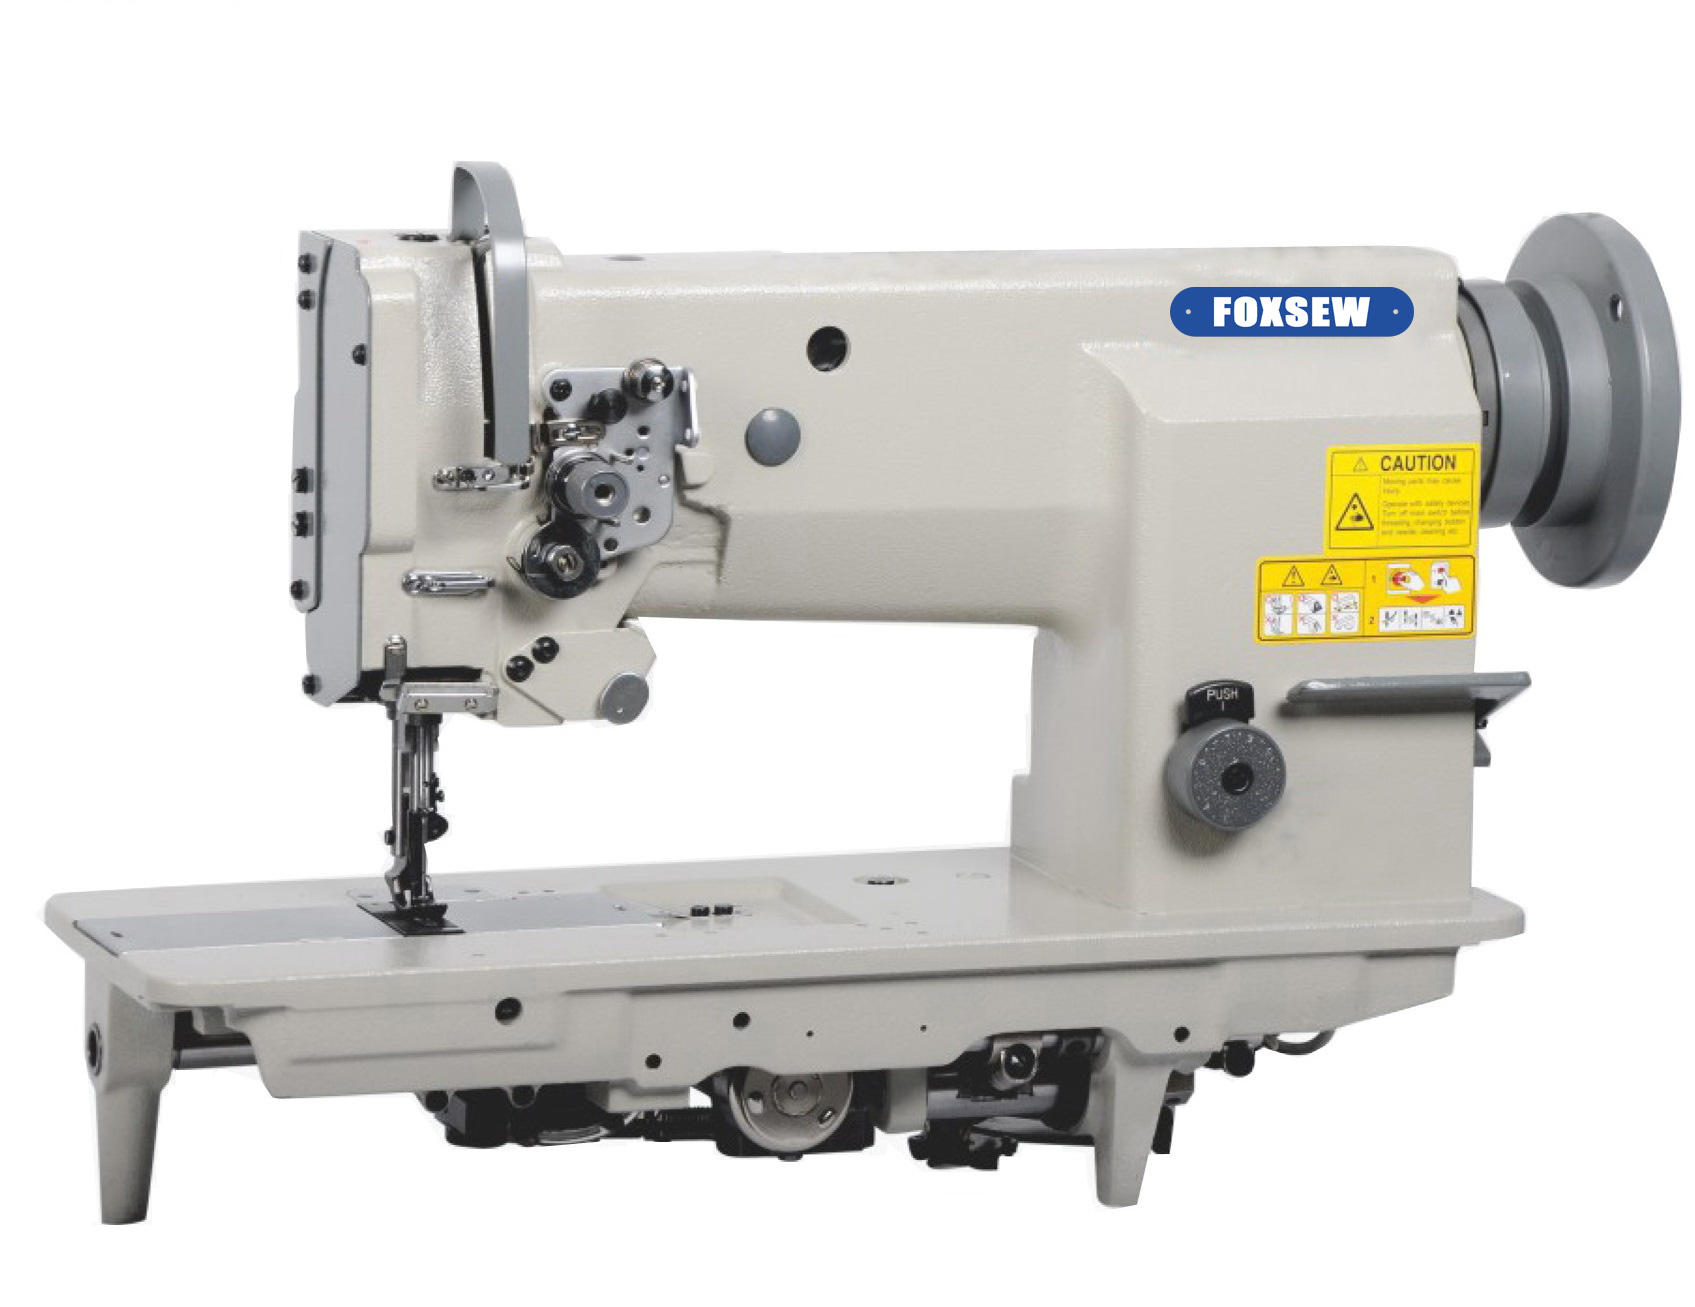 KD-20606-1 Single Needle Compound Feed Heavy Duty Lockstitch Sewing Machine